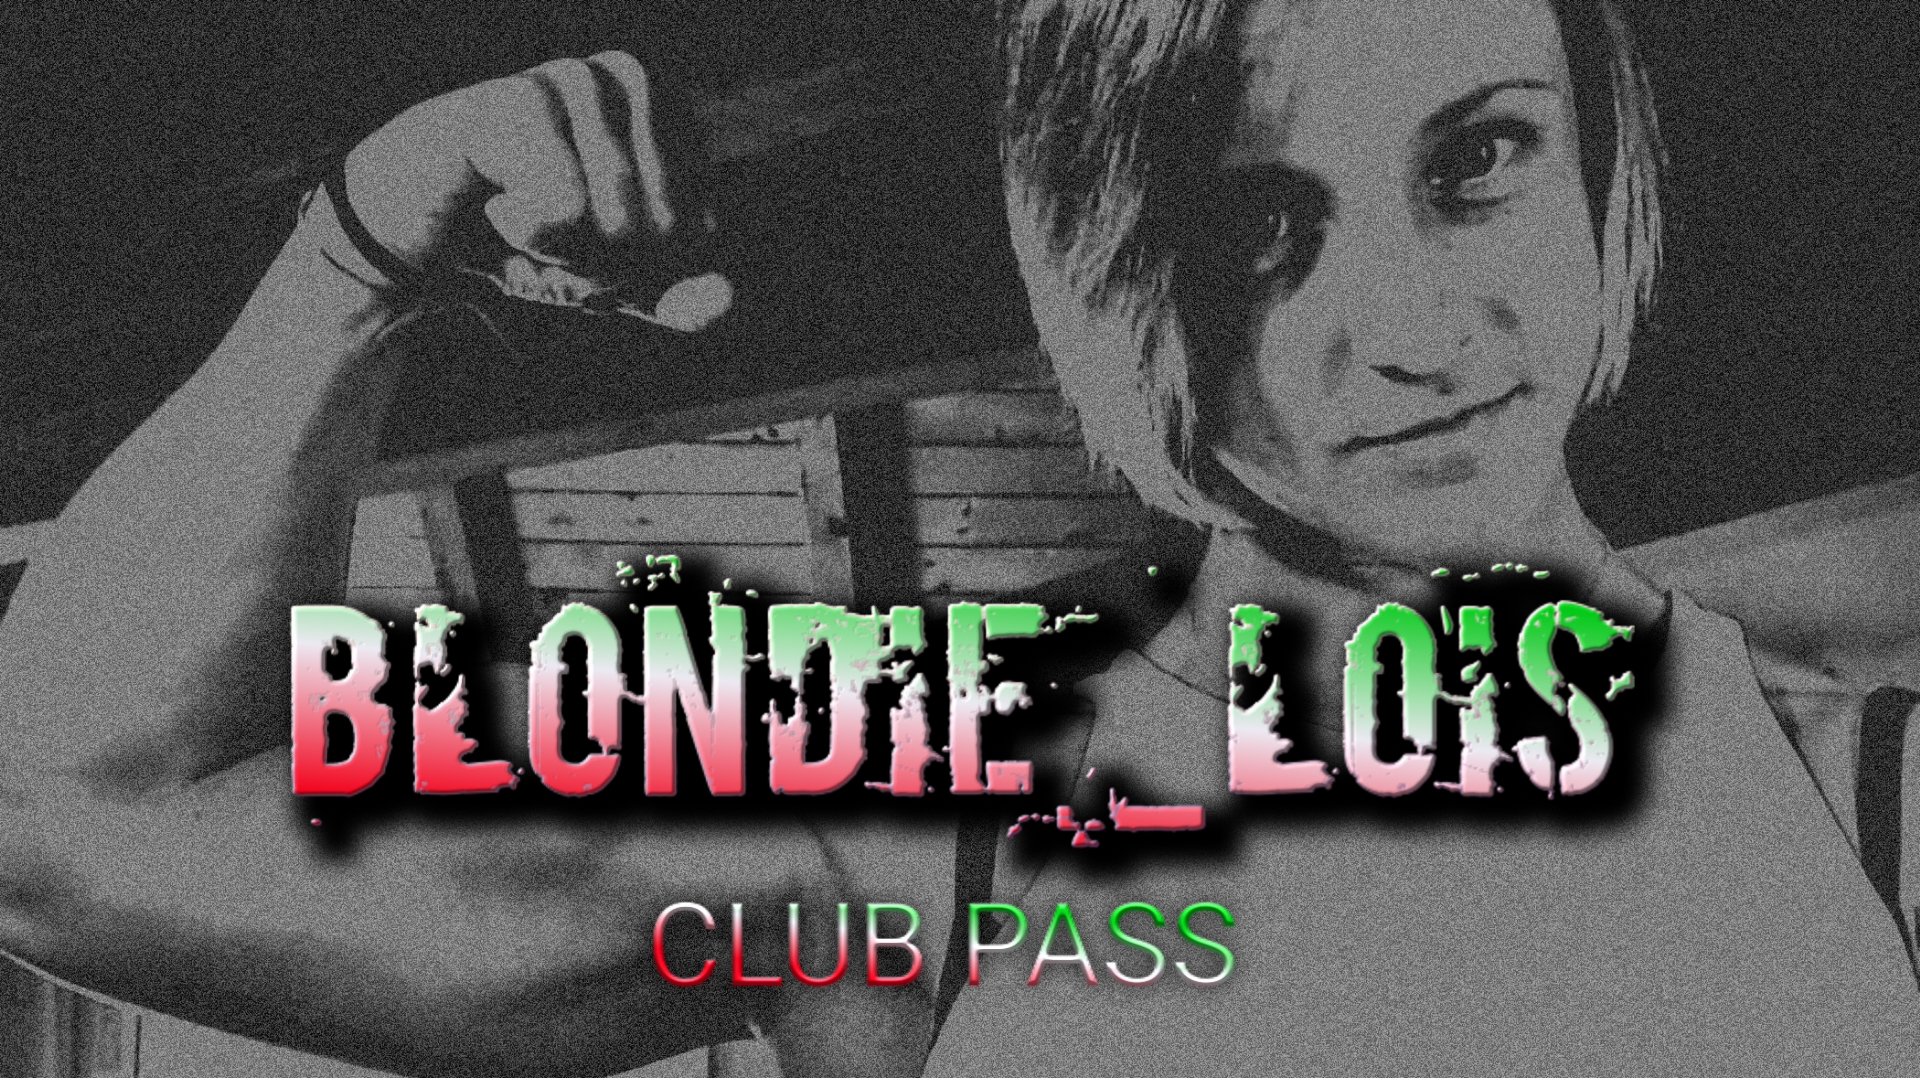 Blondie_lois Club Pass